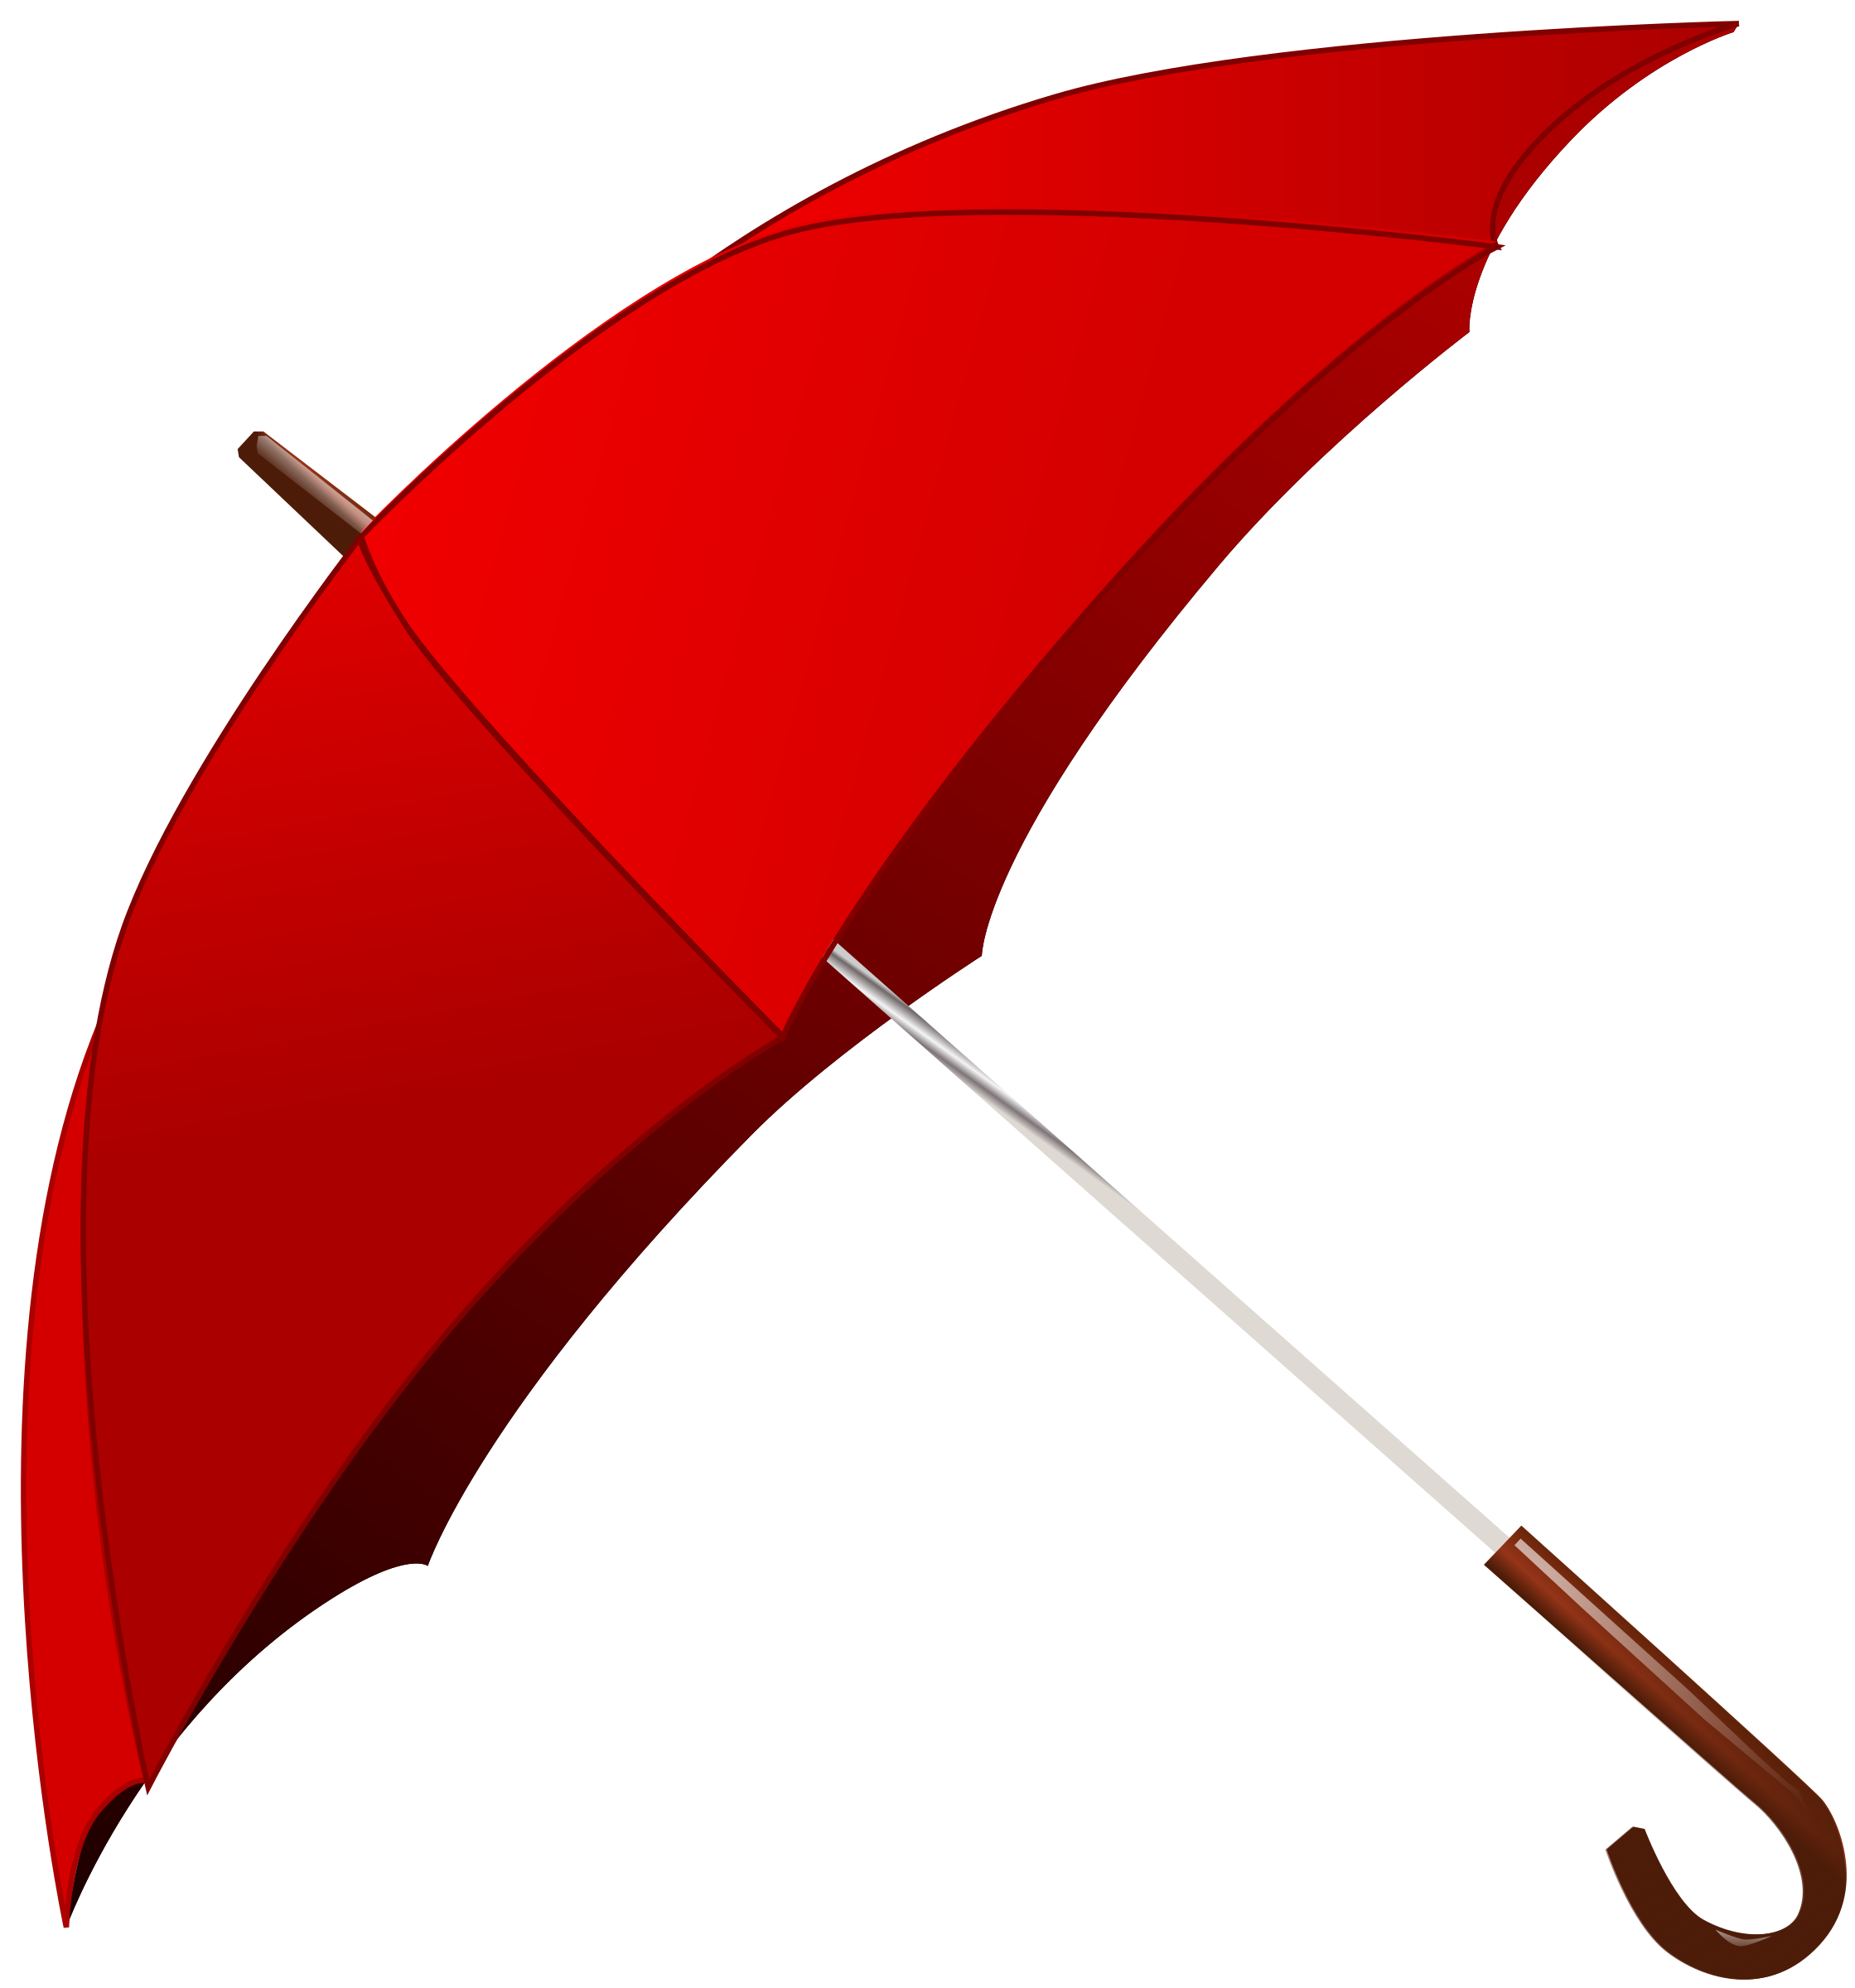 Clipart umbrella public domain.  collection of red